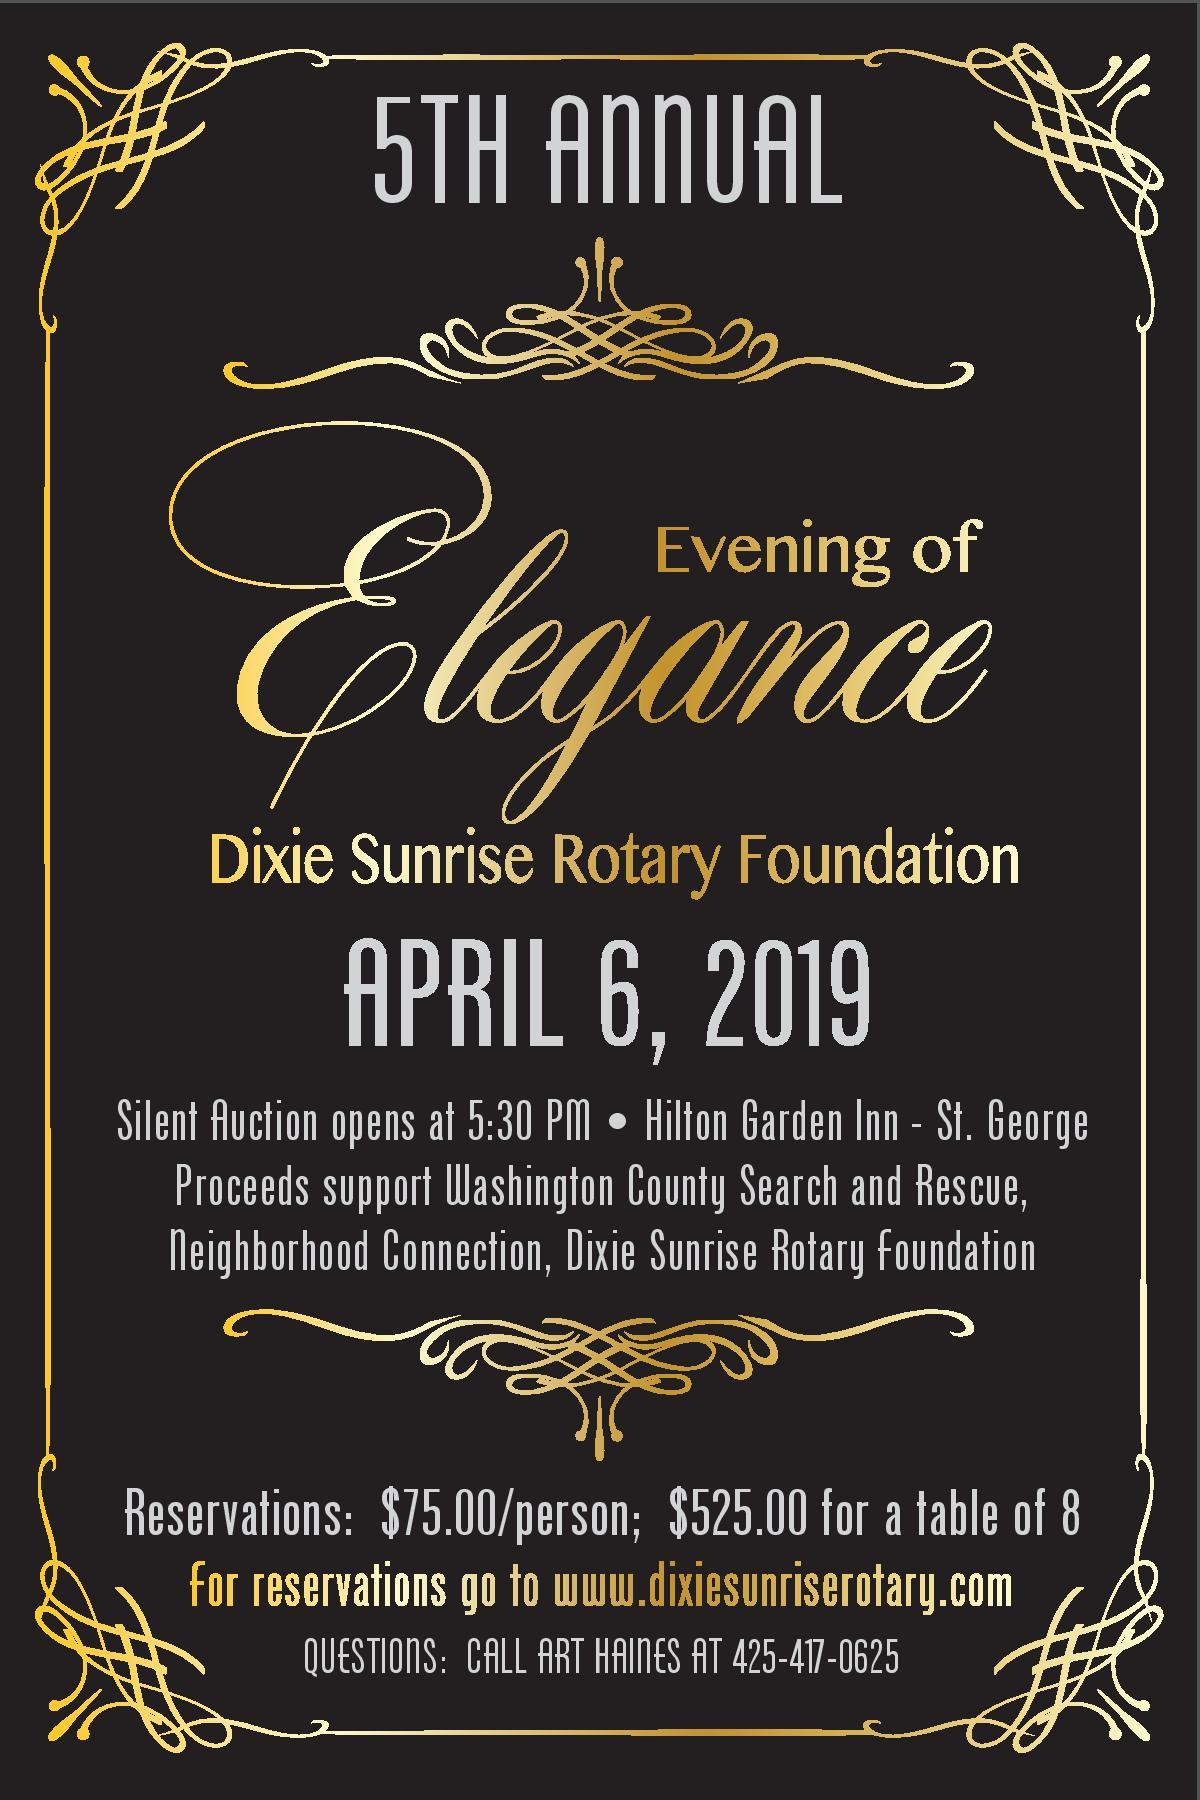 Dixie Sunrise Rotary 2019 Evening of Elegance